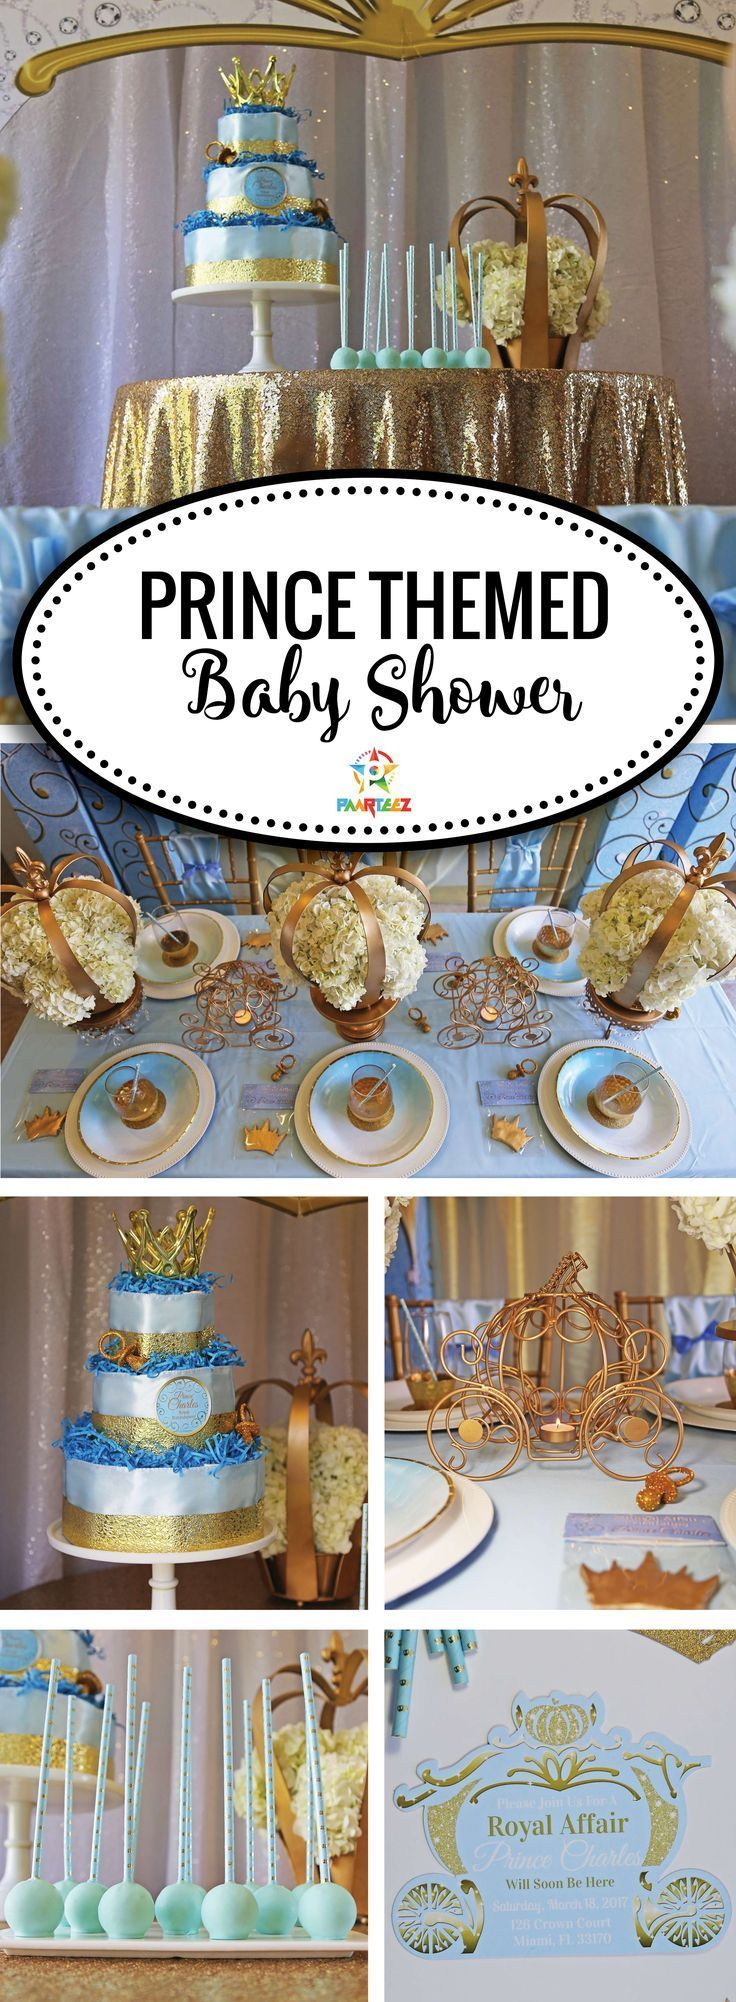 Prince Themed Baby Shower Ideas. Details and more photos at paarteez.com.